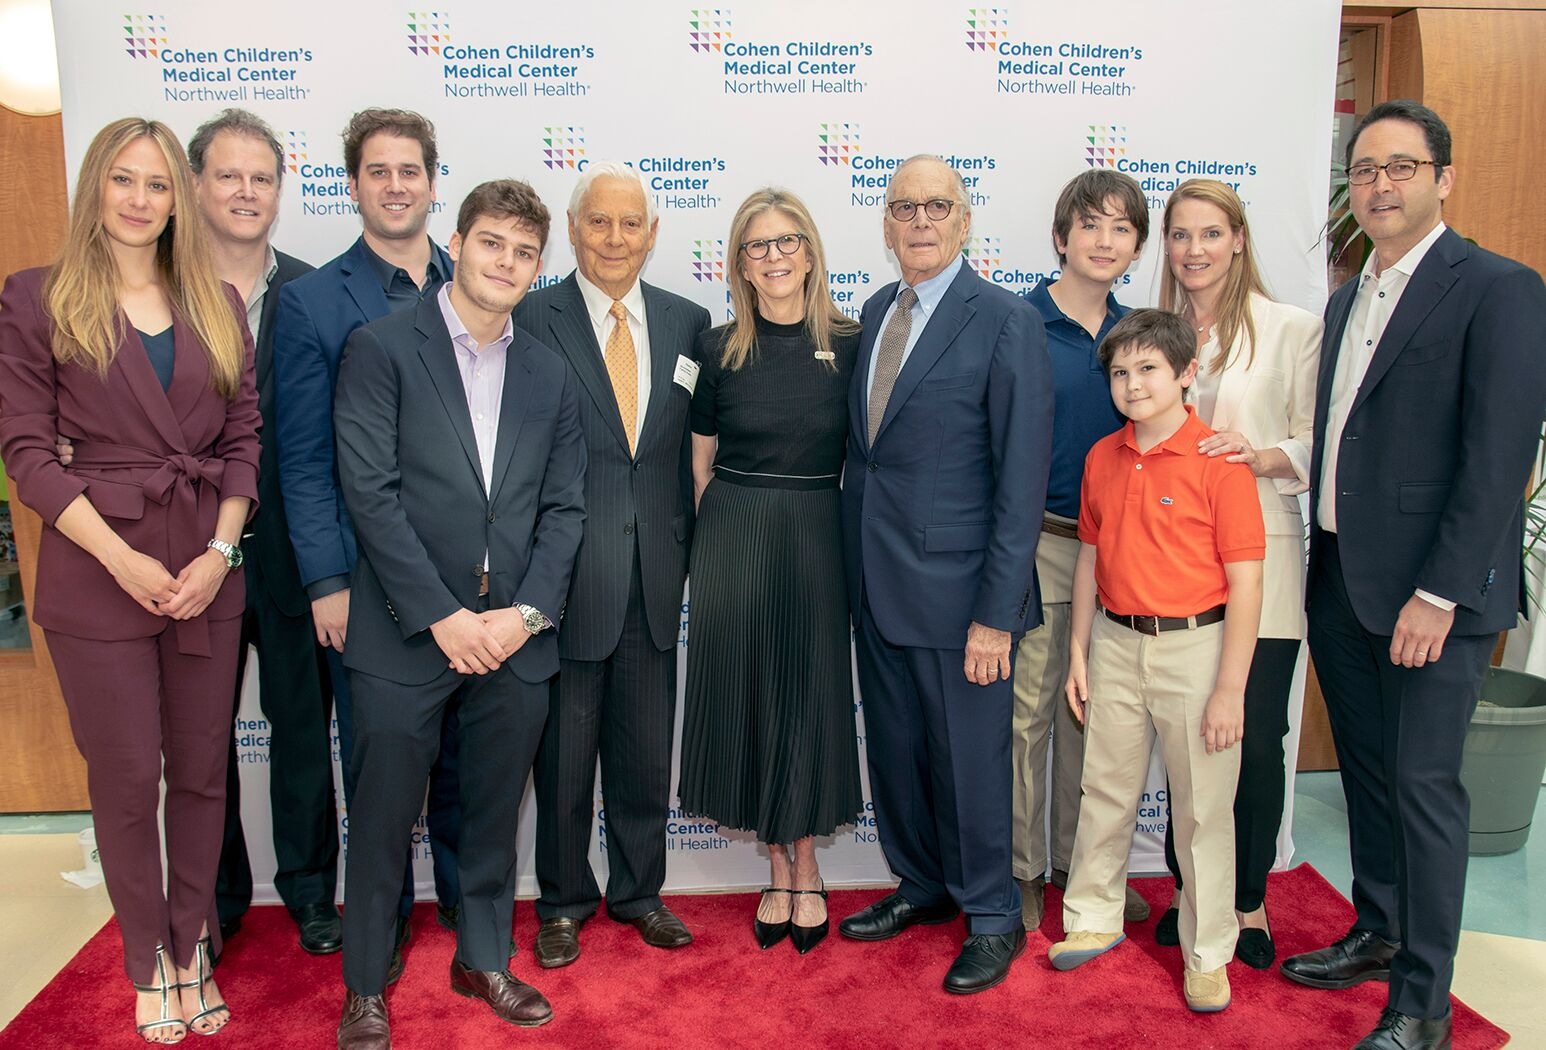 Northwell Health recently recognized the Blumenfeld family in honor of their lifetime giving to Cohen Children's Medical Center. The new Blumenfeld Family Pavilion was unveiled at a dedication ceremony held earlier this month.